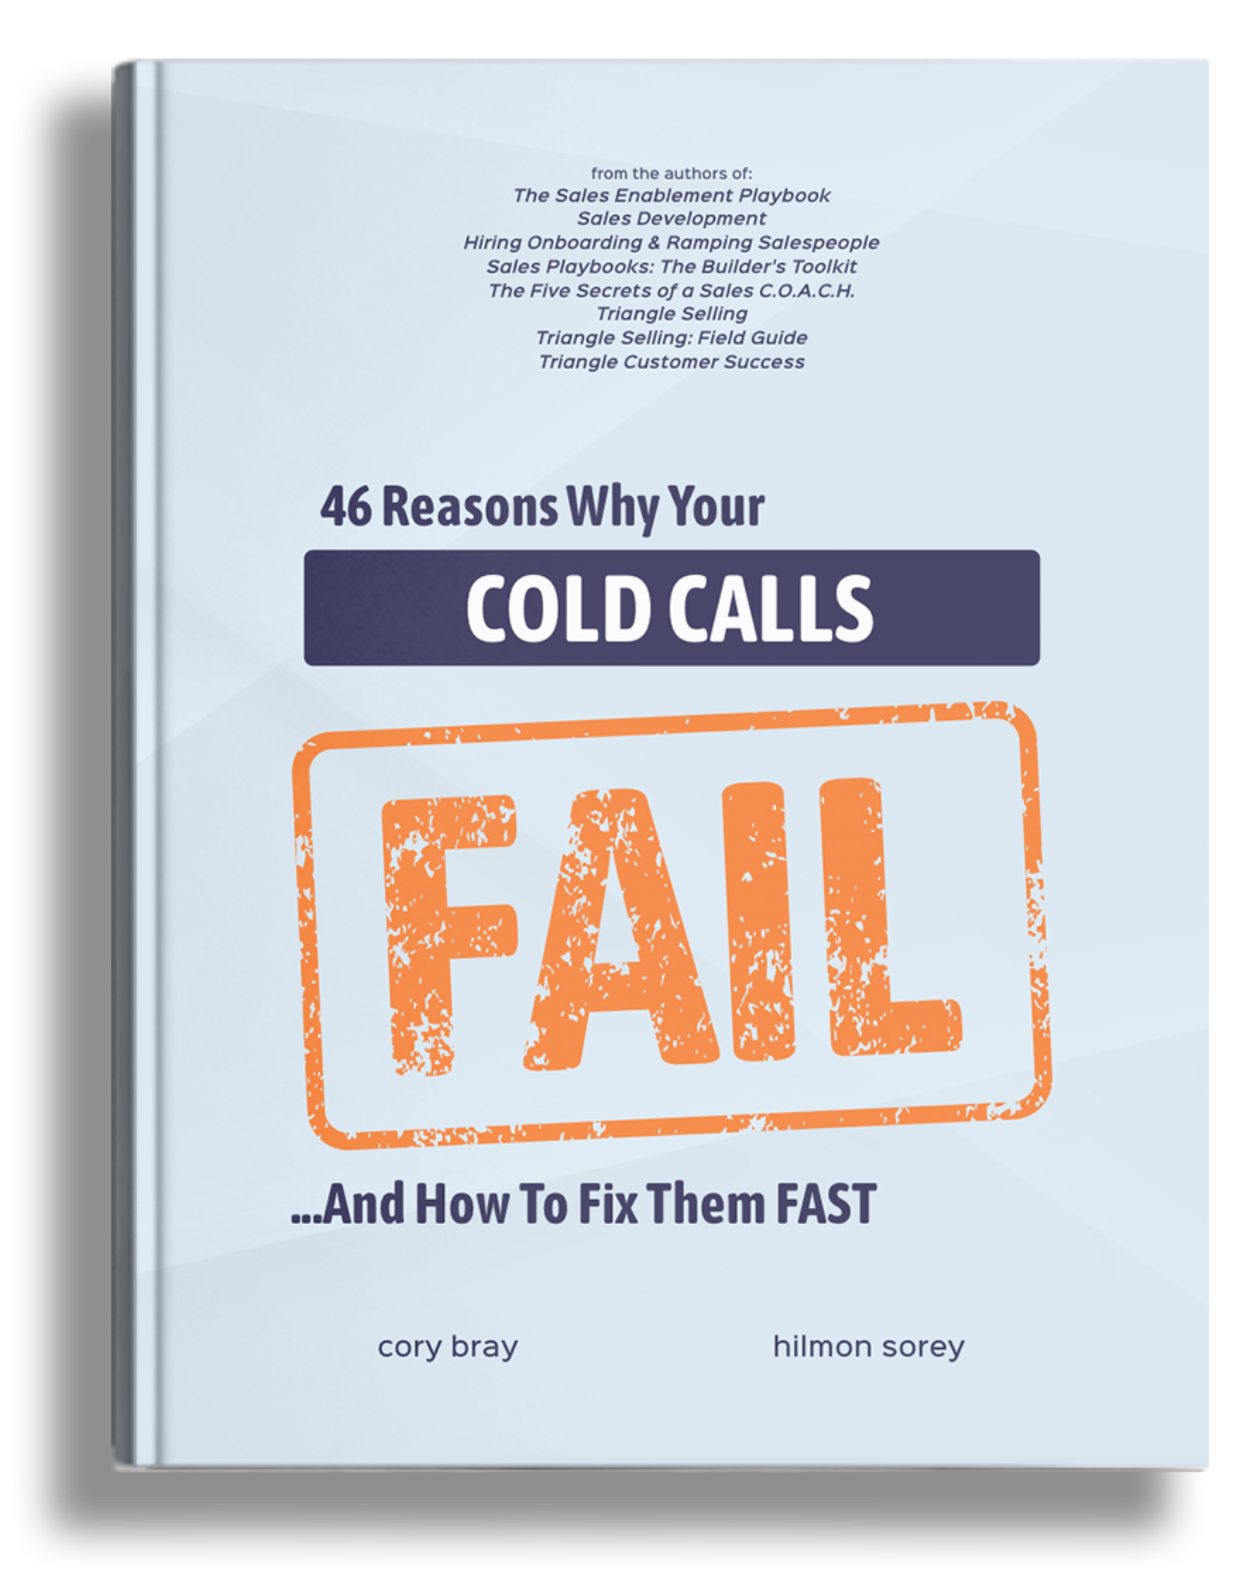 46 reasons why cold calls fail book cover